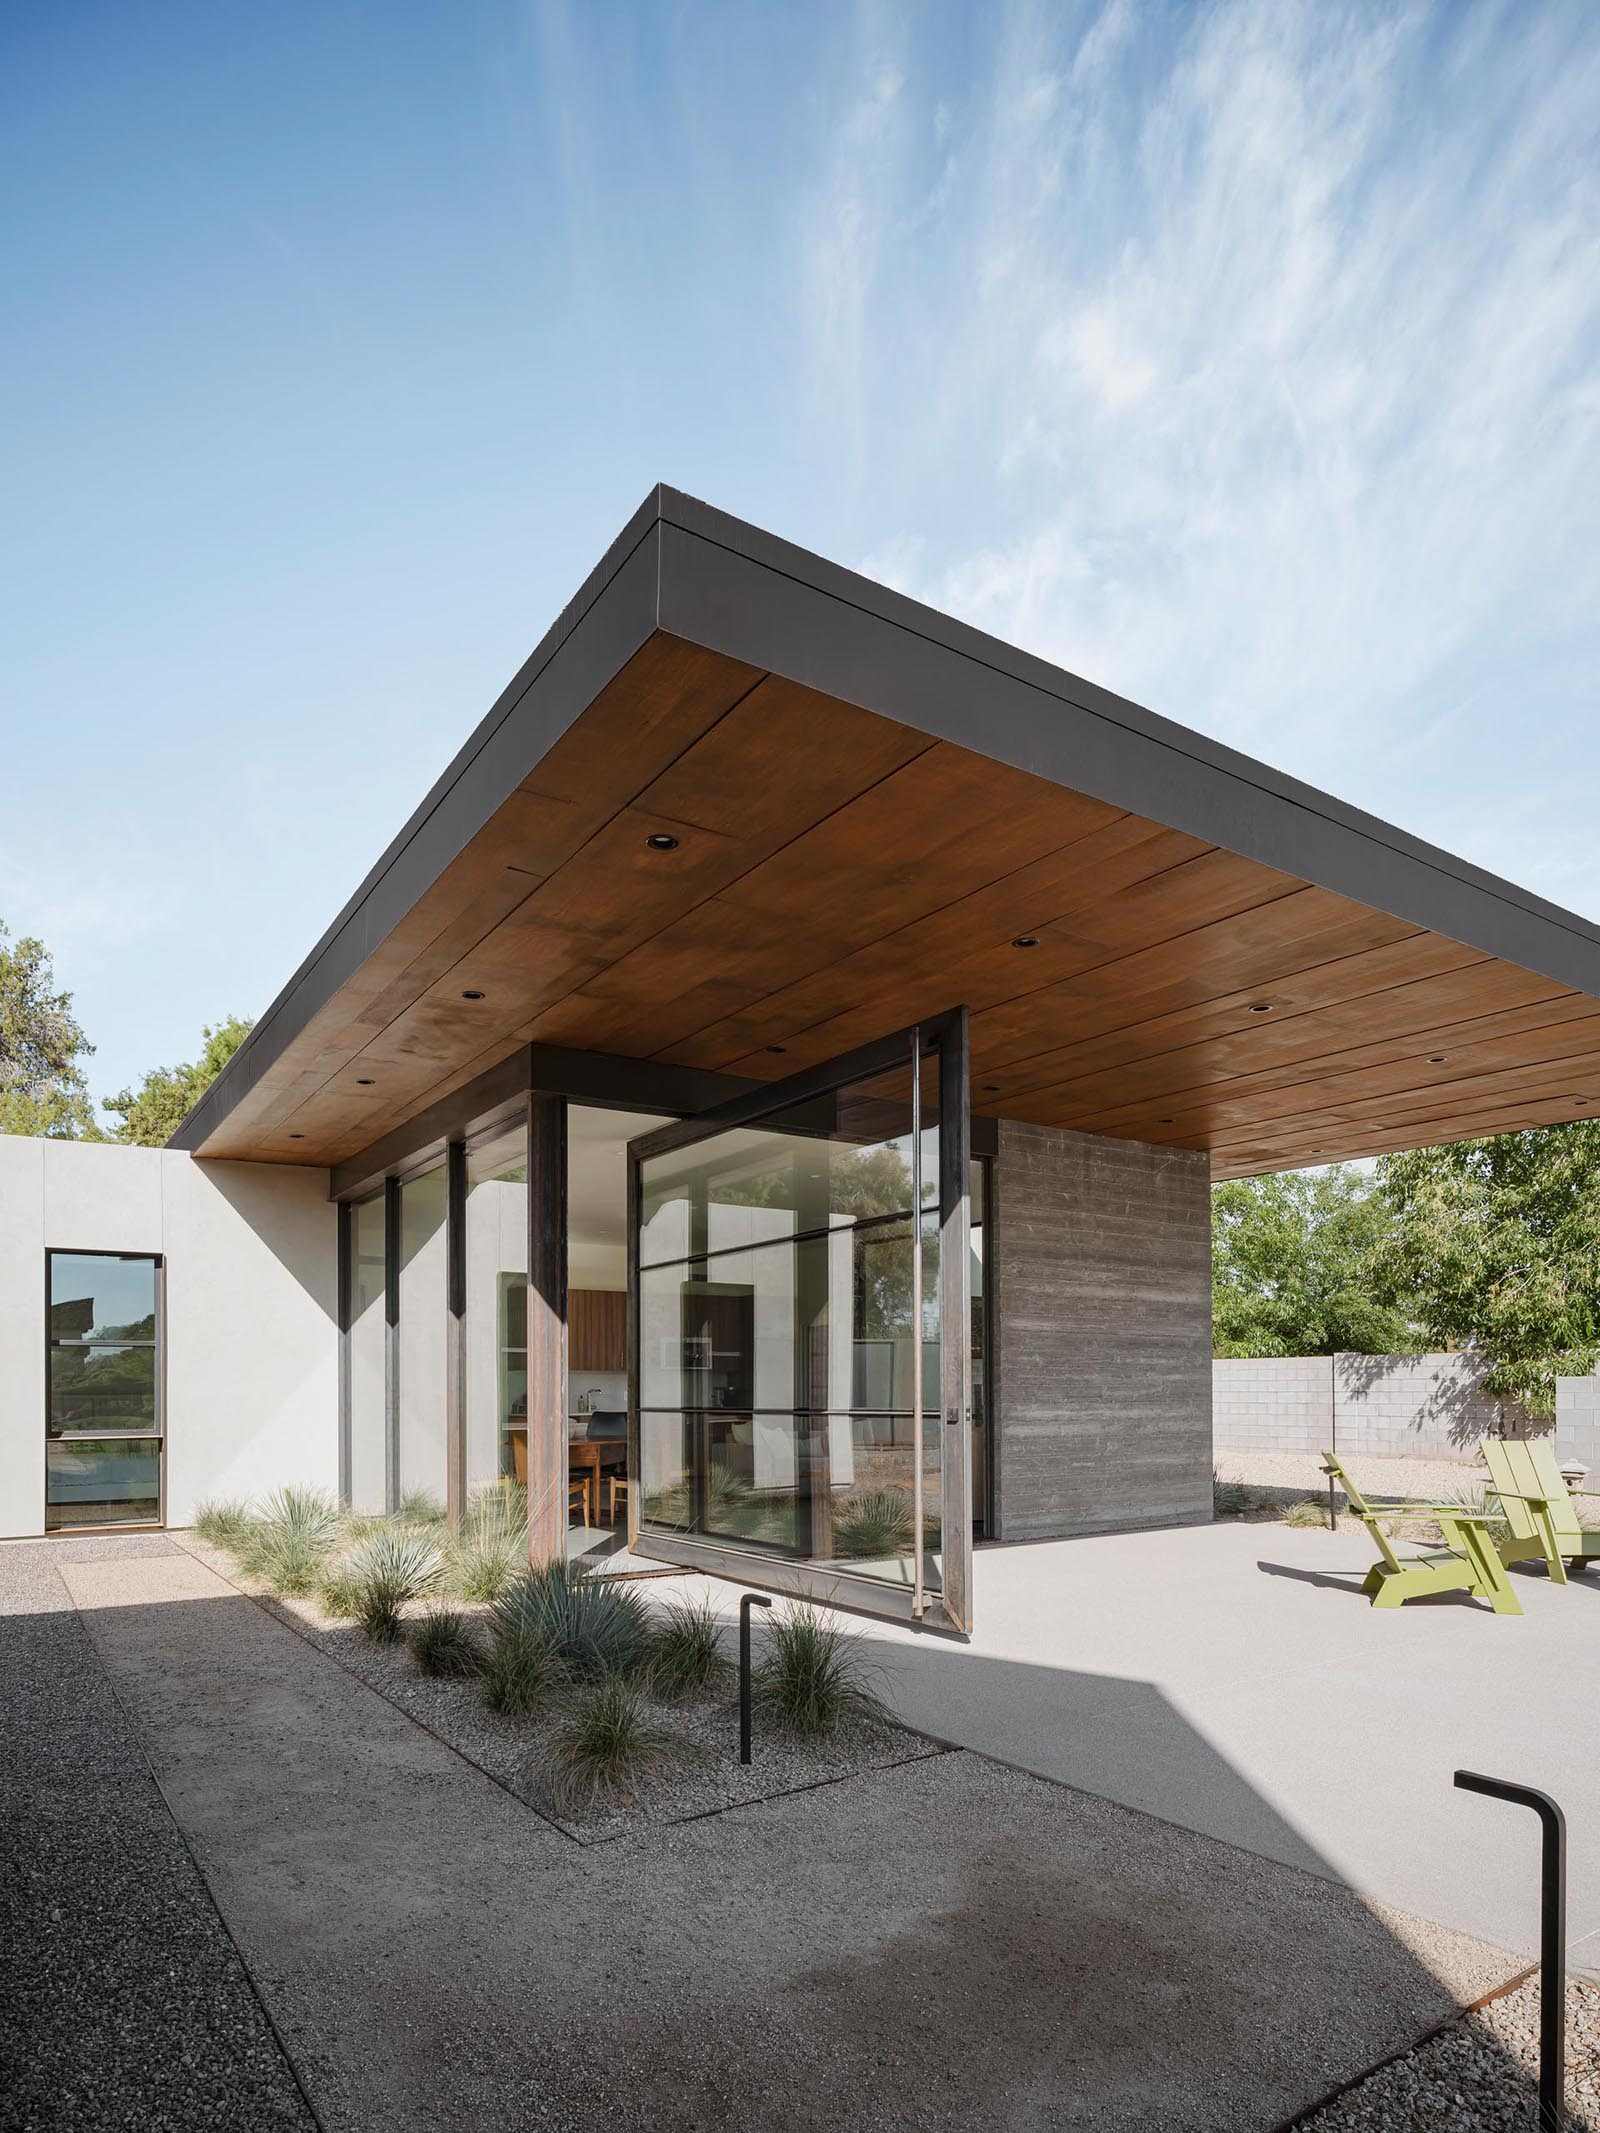 The 12 foot wide pivoting glass door of this small and modern home connects the interior spaces to the patio.